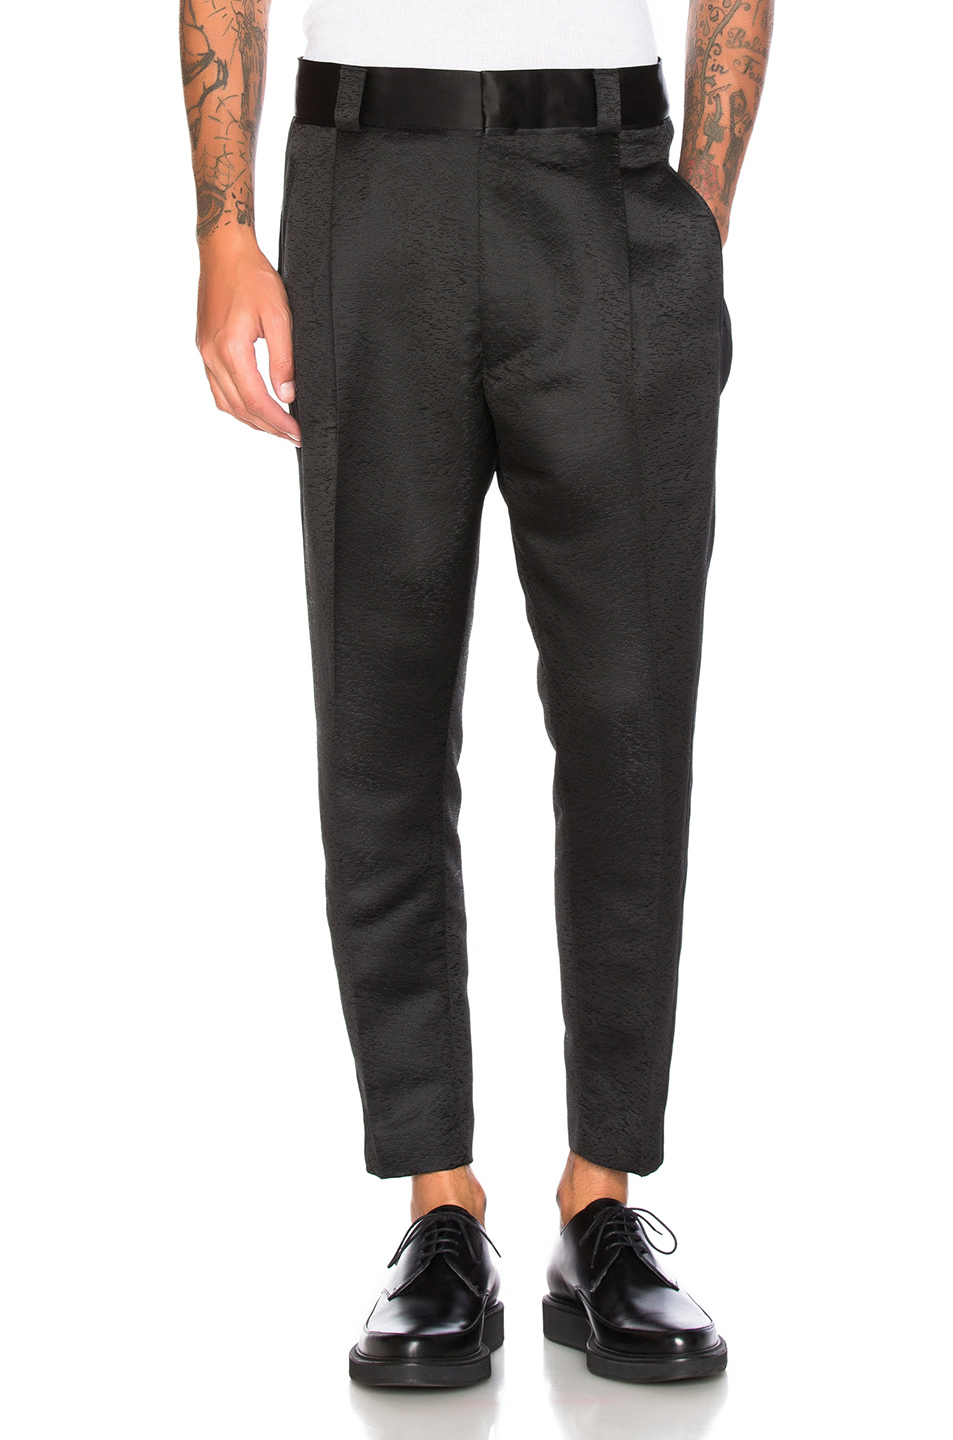 Haider Ackermann Dropped Crotch Trousers in Black